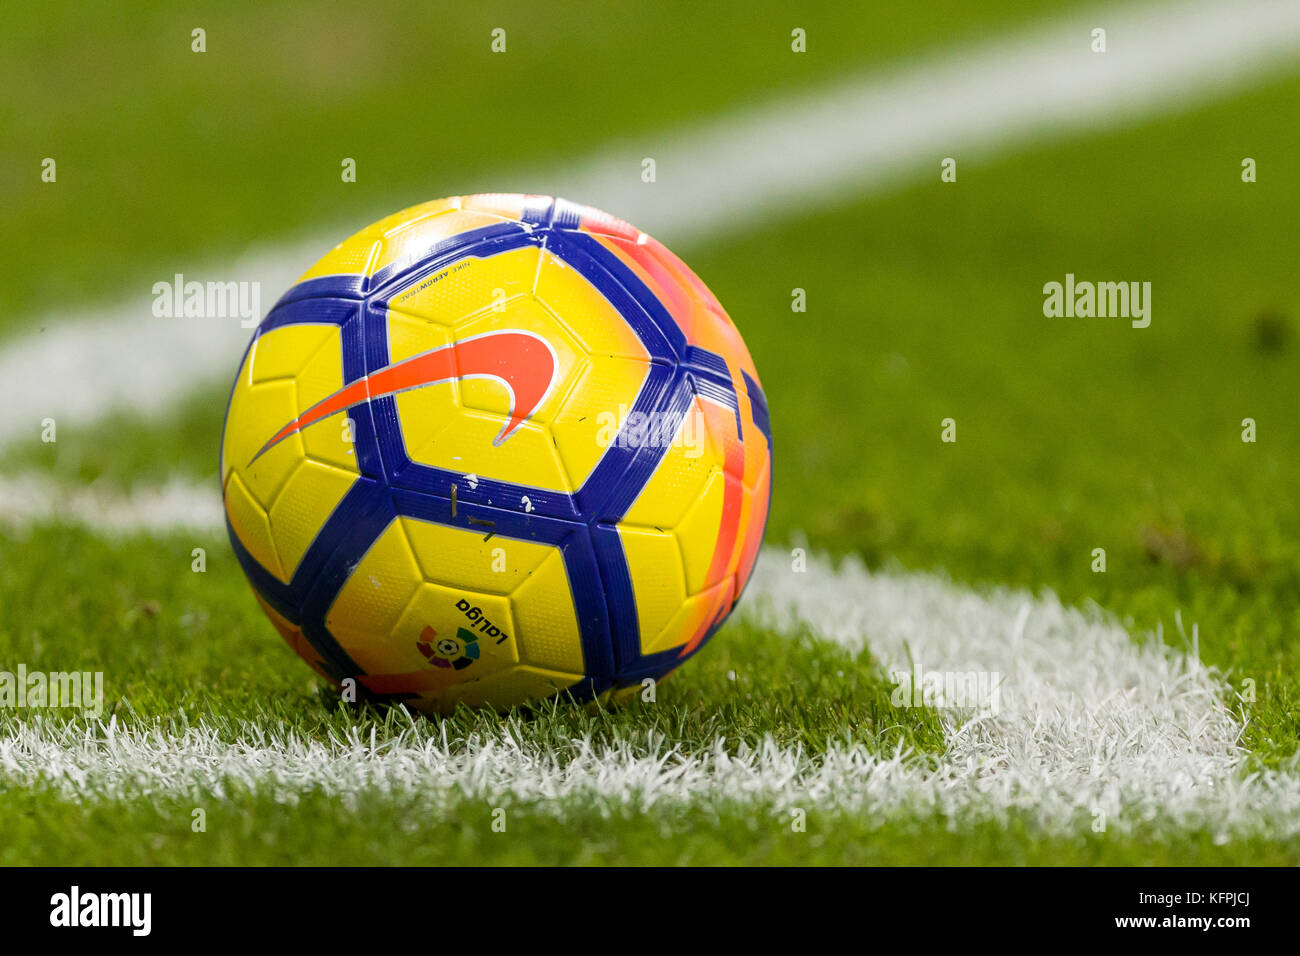 Barcelona, Spain. 30th Oct, 2017. Winter's ball of La Liga during the match between RCD Espanyol against Real - Stock Image